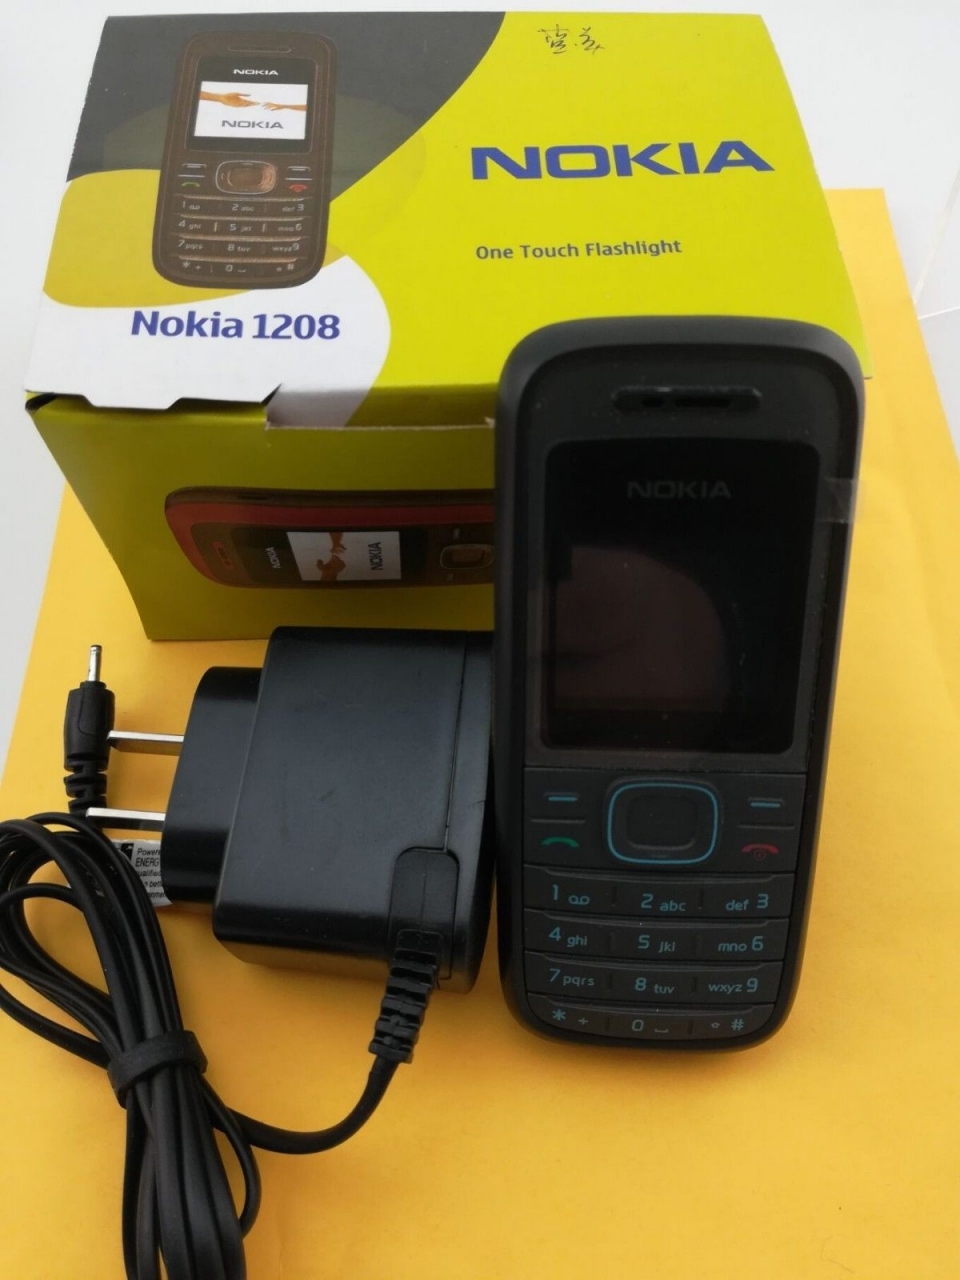 Refurbished phone Original Cellular Nokia 1208 Cheap phones GSM unlocked phone red 13